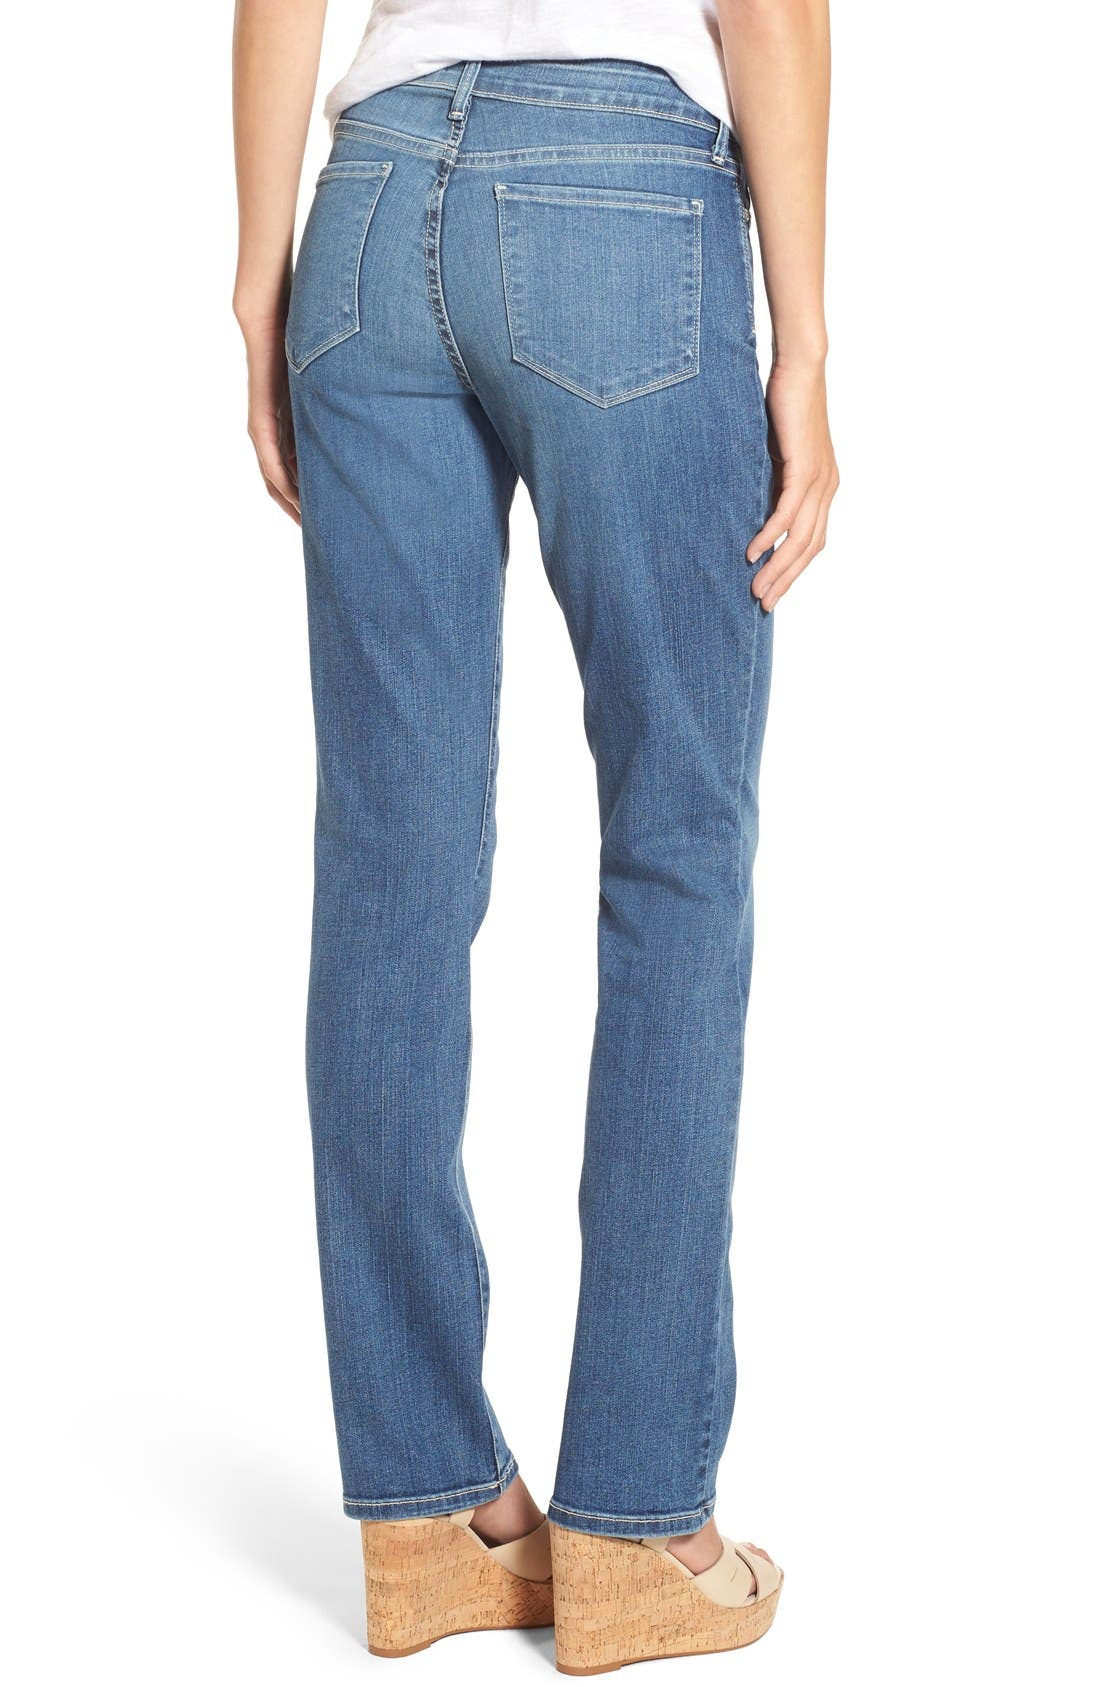 Marilyn Stretch Straight Leg Jeans,                             Alternate thumbnail 3, color,                             HEYBURN